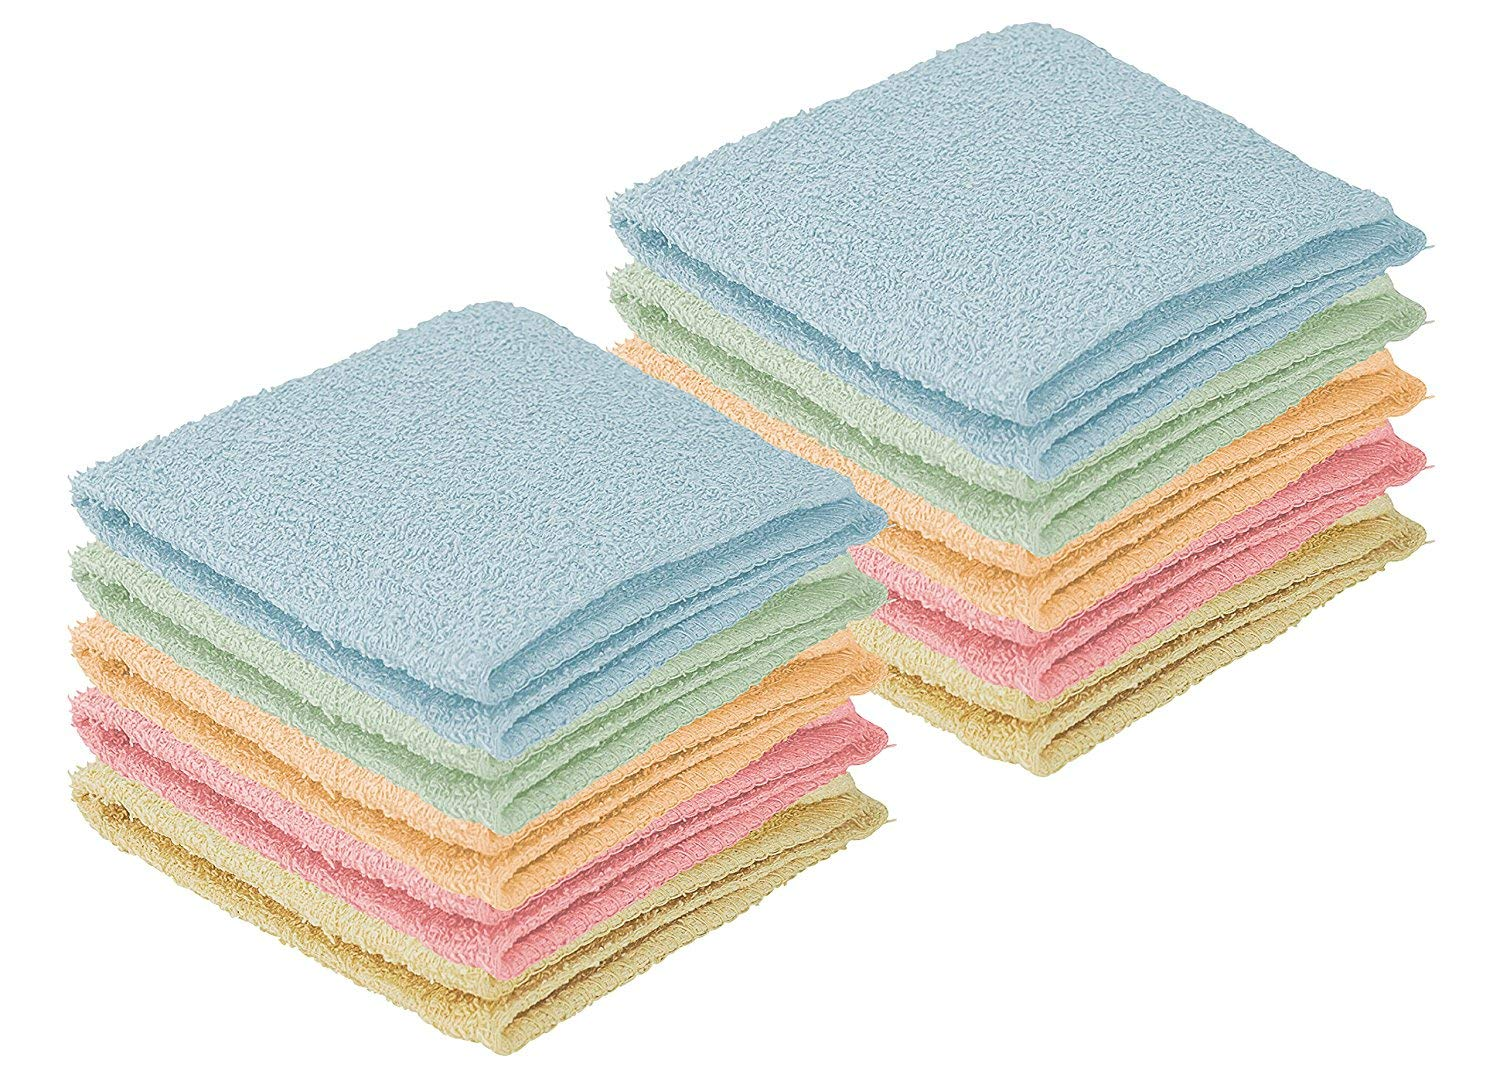 DecorRack 20 Pack 100% Cotton Wash Cloth, Luxurious Soft, 12 x 12 inch Ultra Absorbent, Machine Washable Washcloths, Assorted Colors (20 Pack)